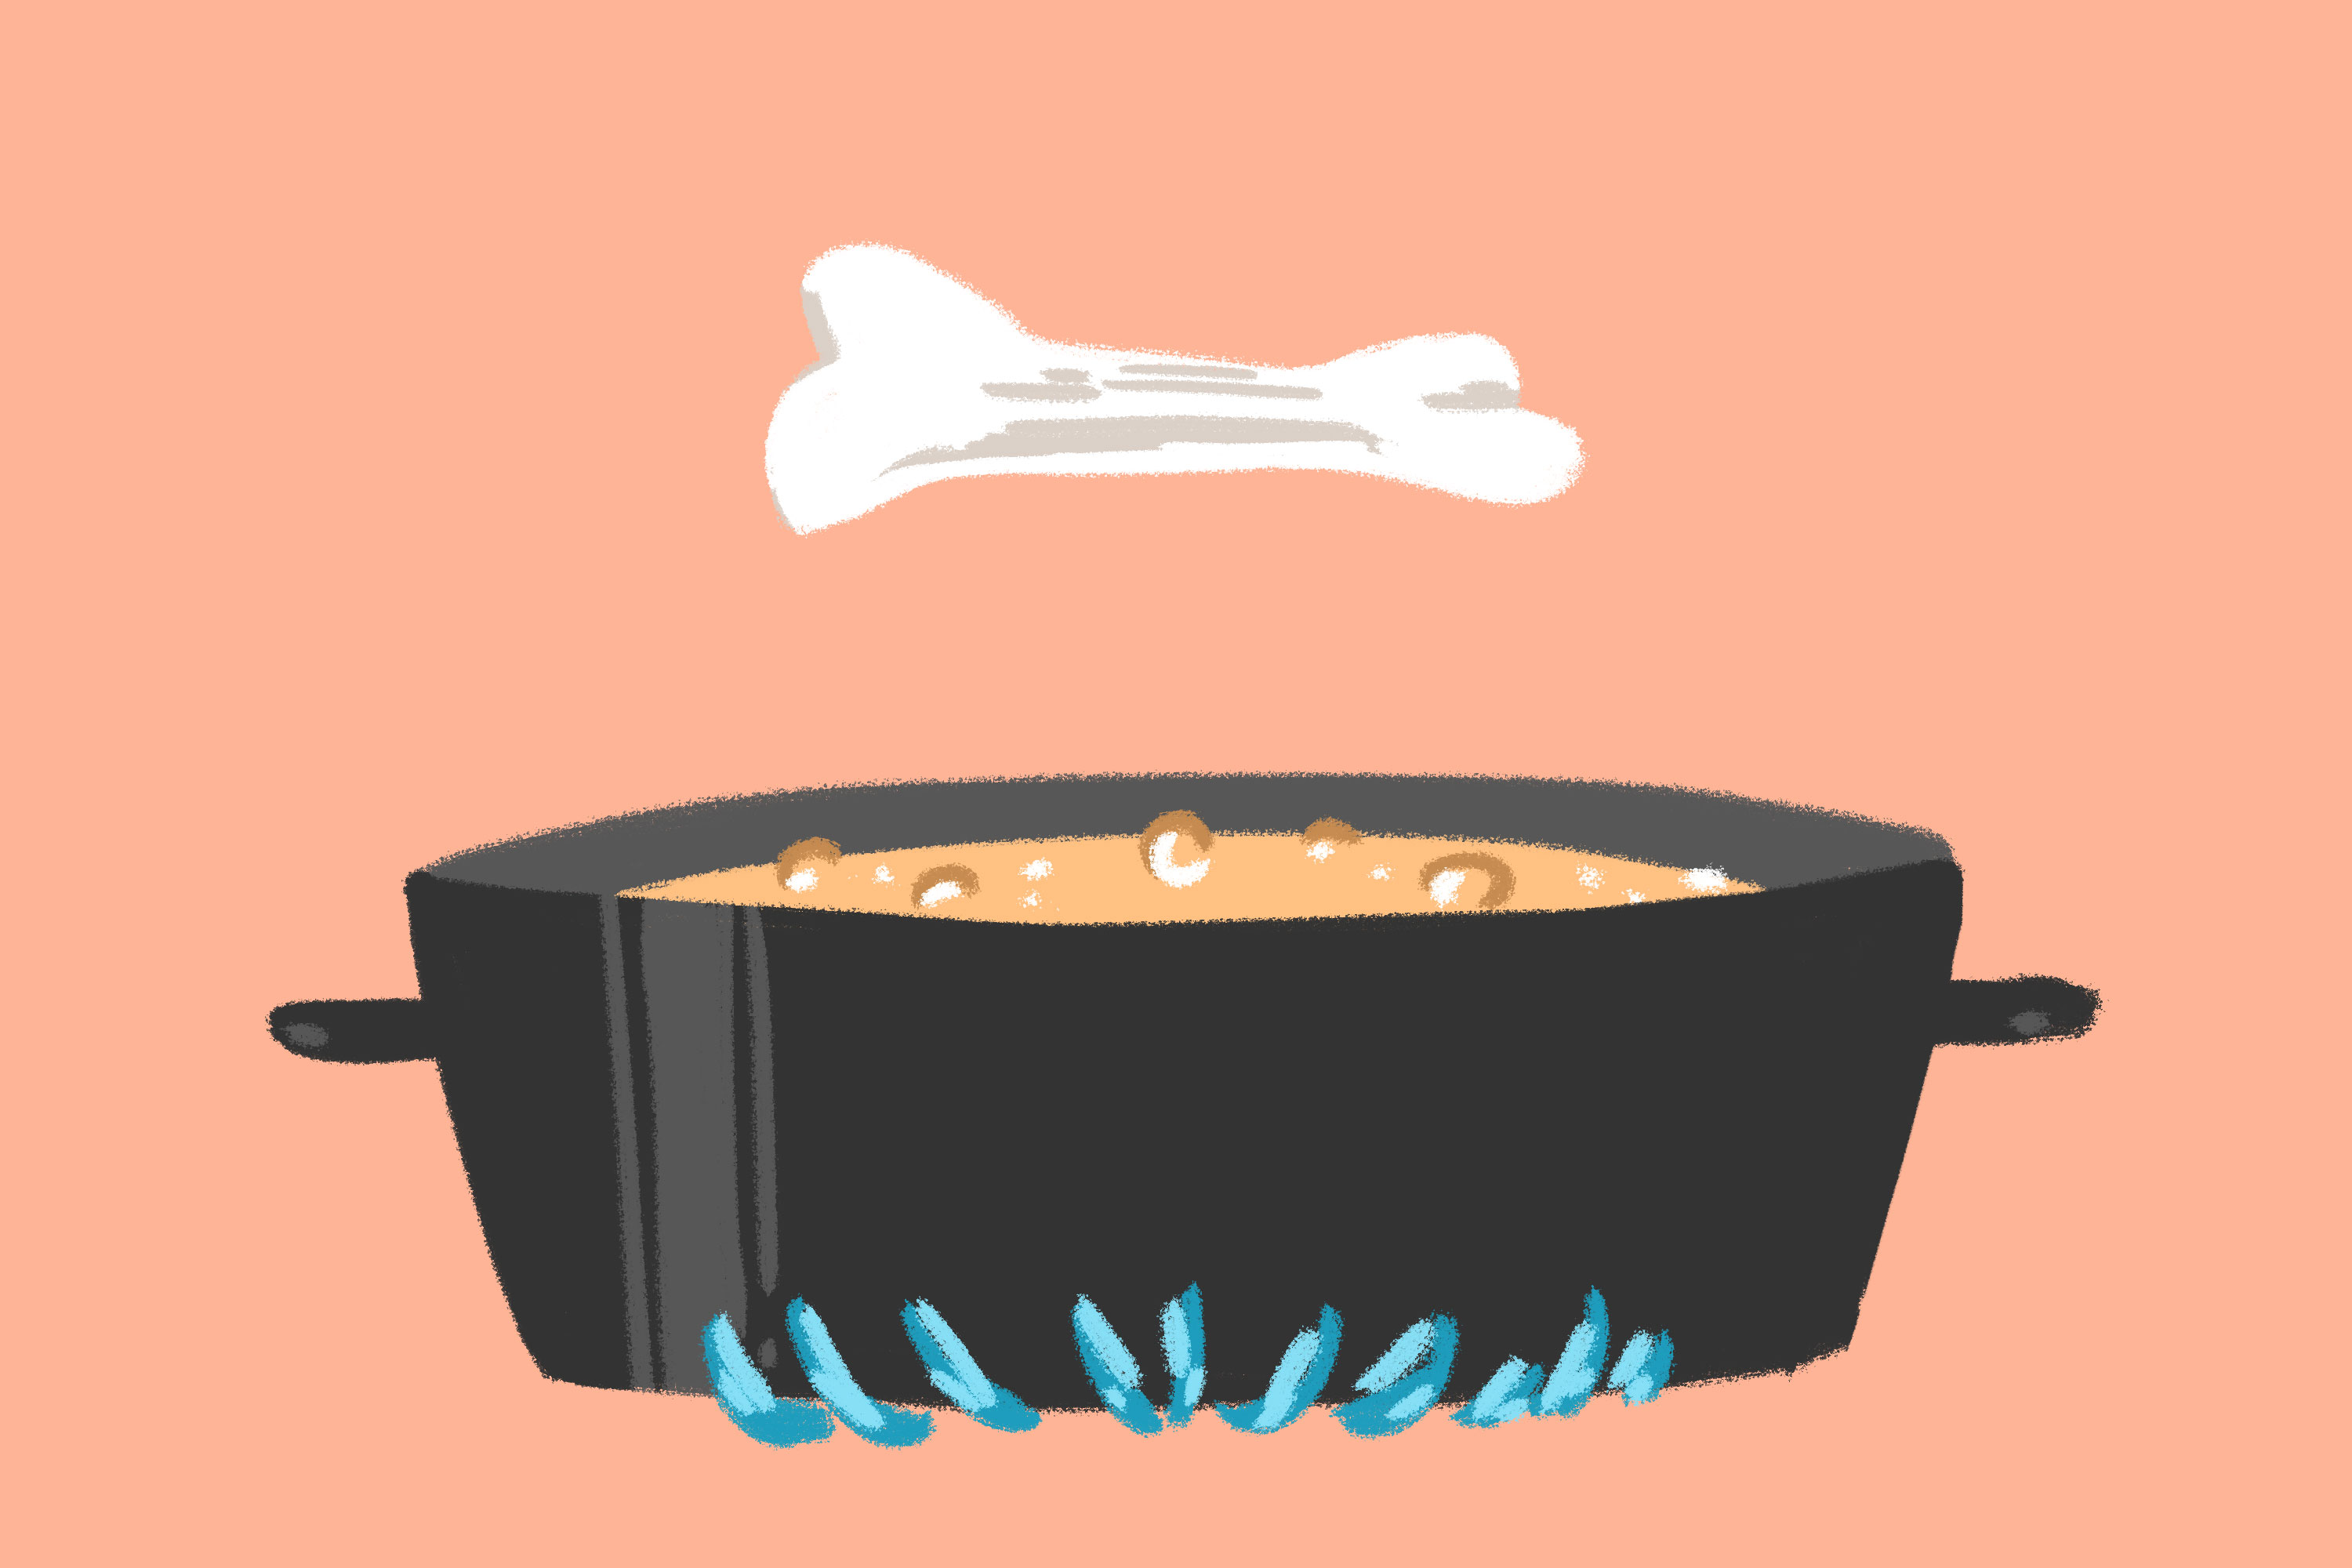 Illustration of a bone hovering above broth simmering in pot